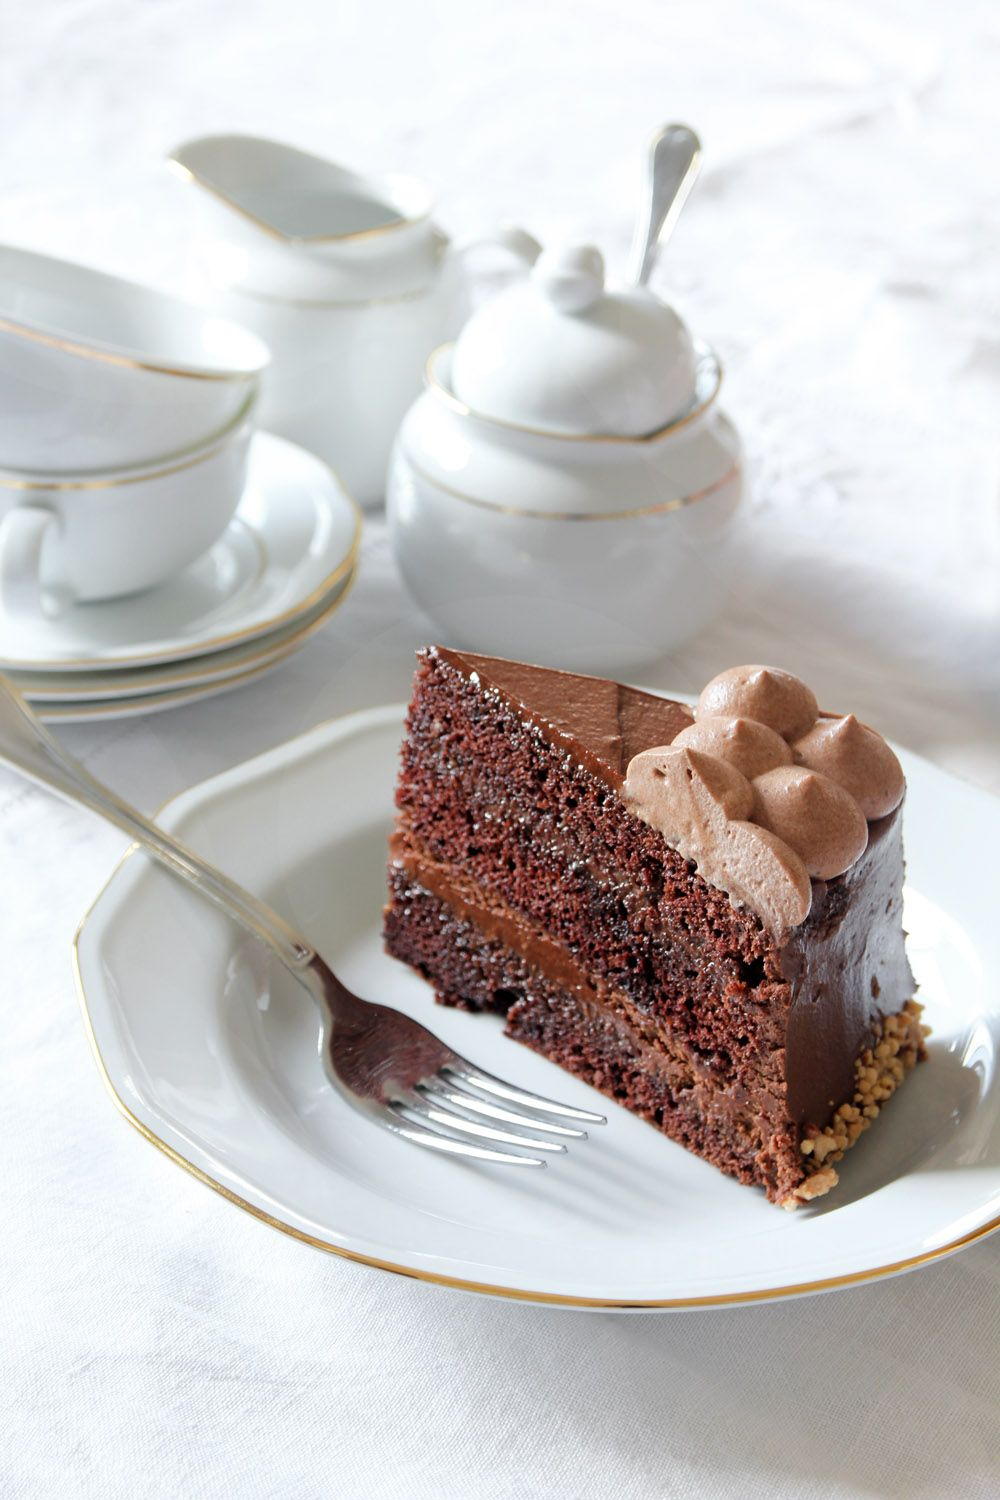 Caramel Hazelnut Chocolate Cake